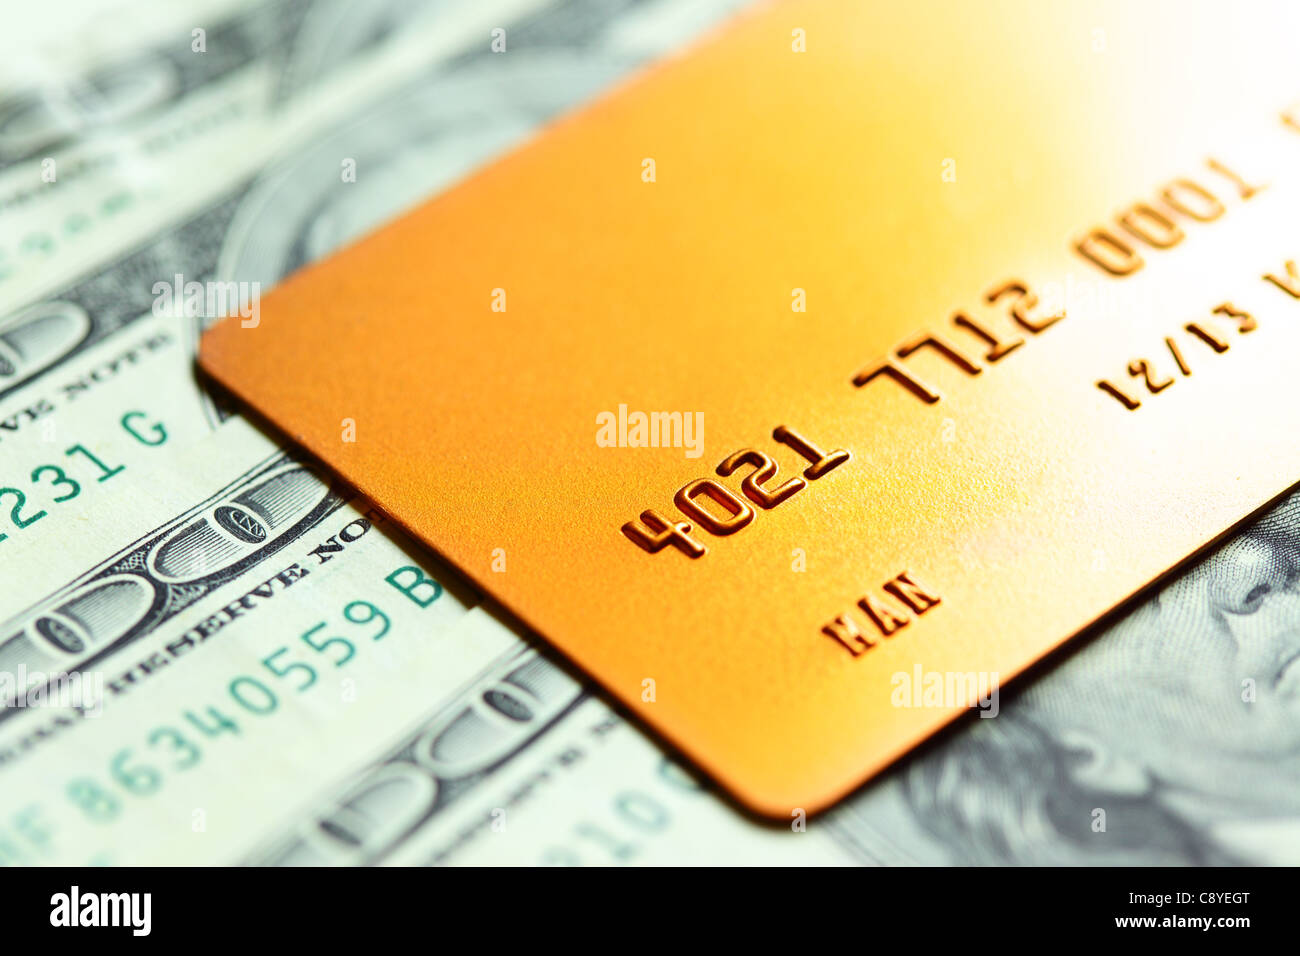 Gold credit card on dollar notes. Shalow DOF! - Stock Image